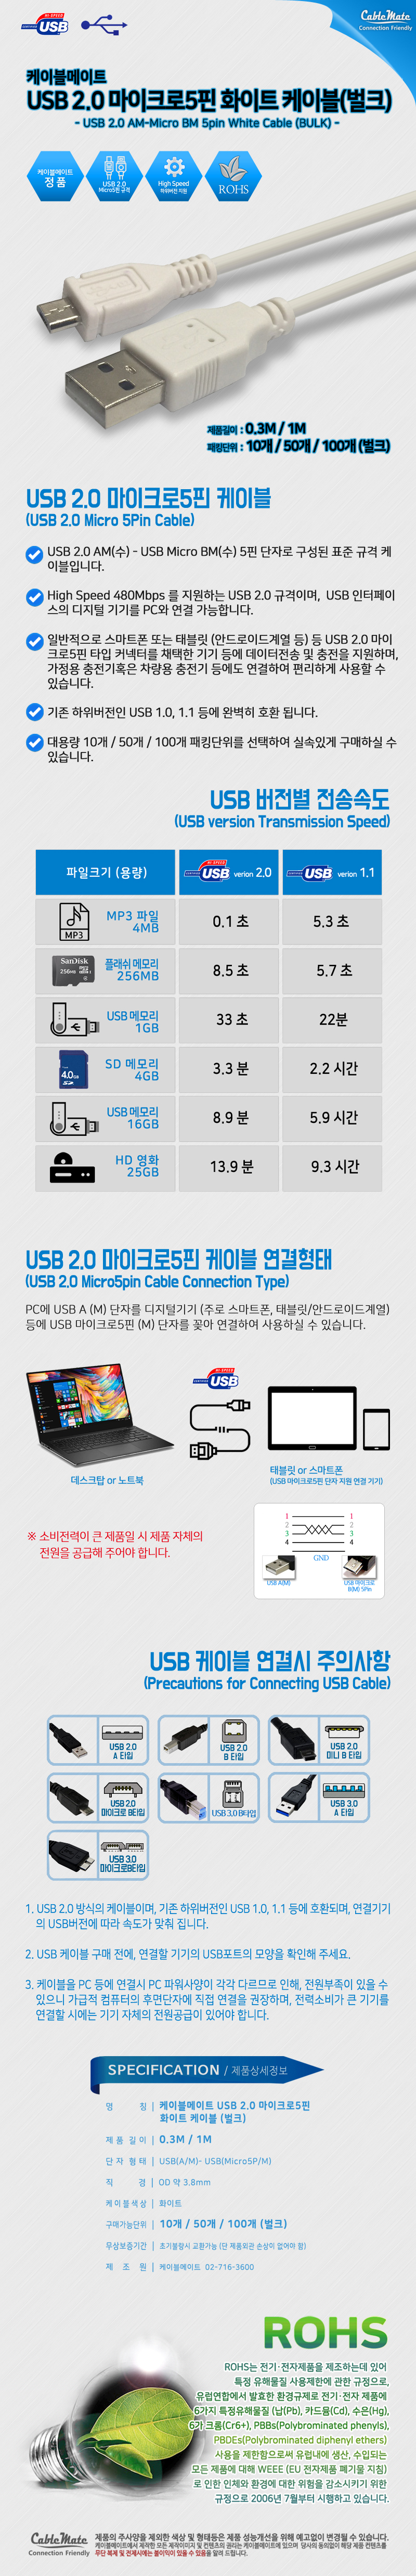 CABLEMATE  USB2.0 마이크로 5핀 벌크 케이블(0.3m, 50개)